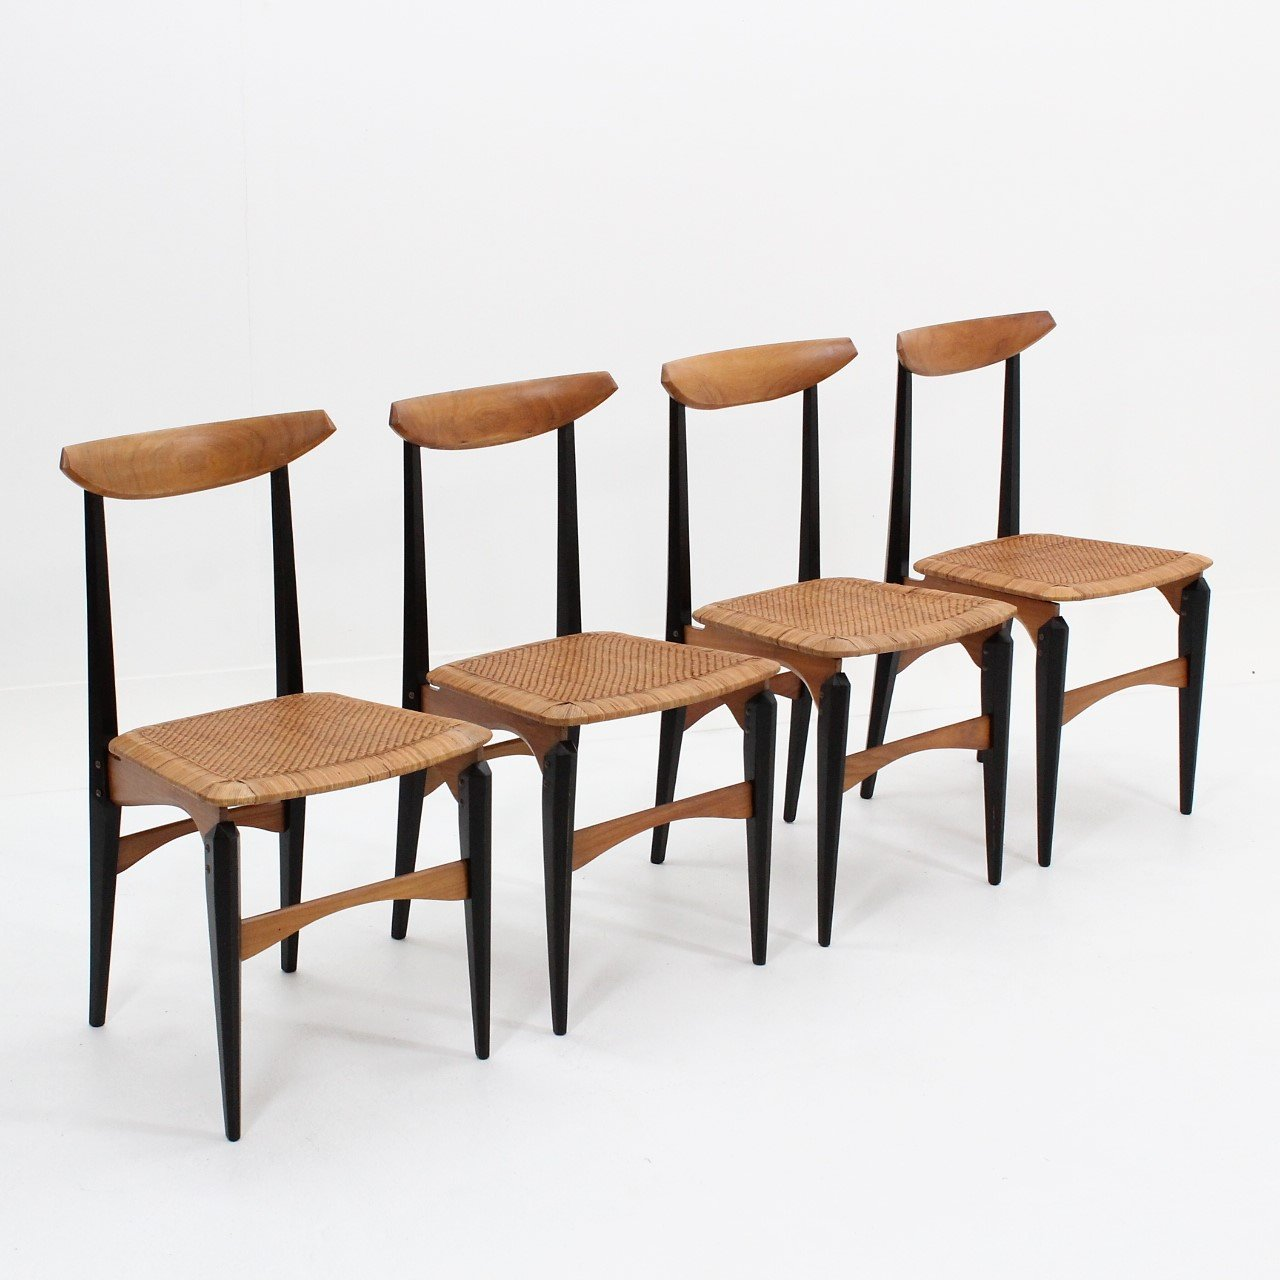 dining chairs italian design bedroom chair gumtree mid century with star seats 1950s 95710